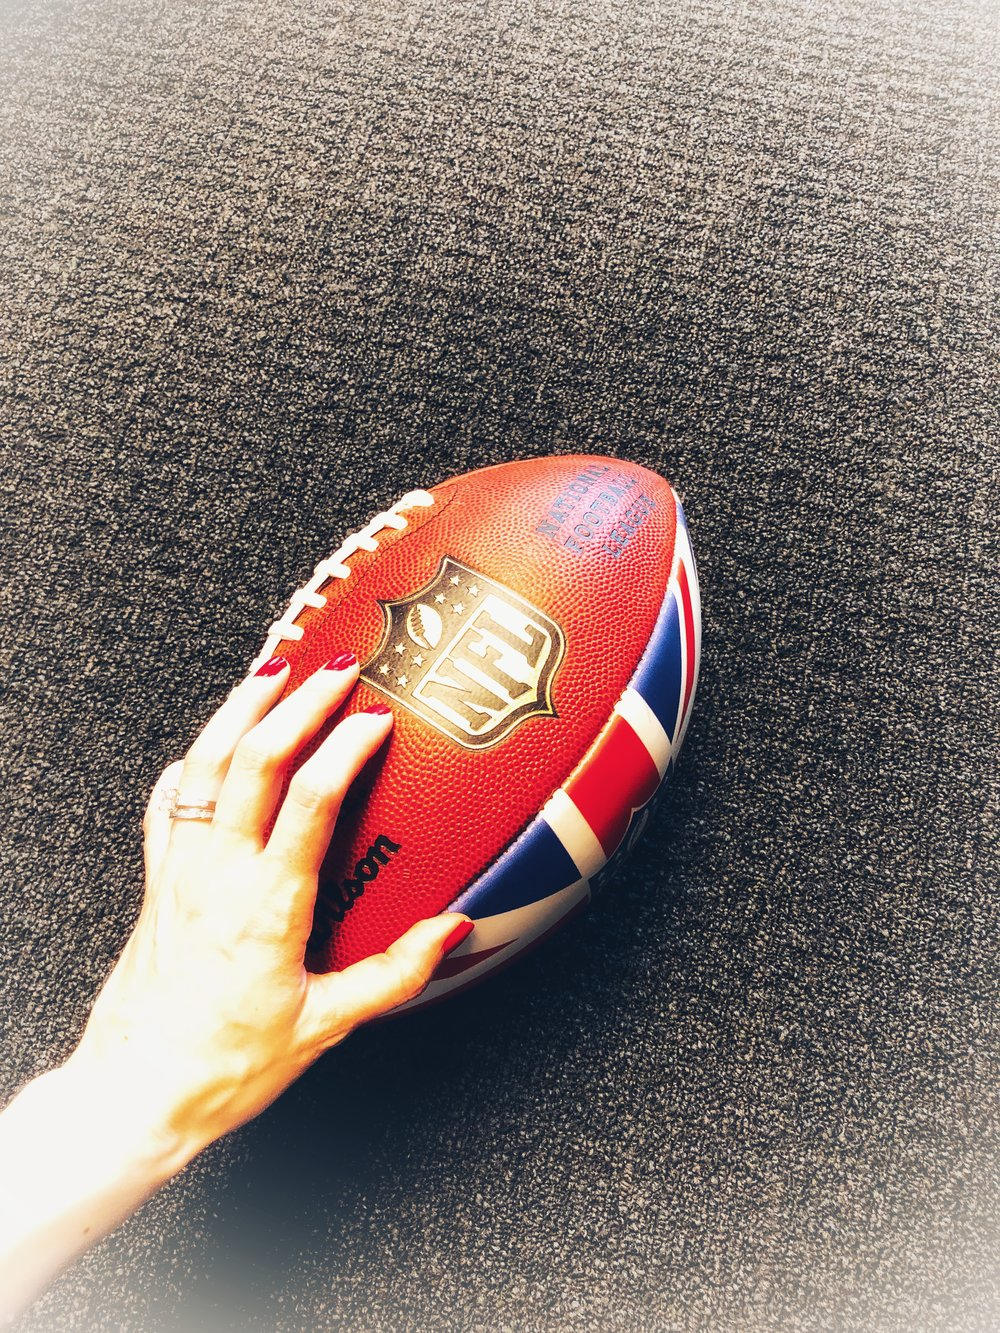 Probably the only time I'll ever touch an NFL football